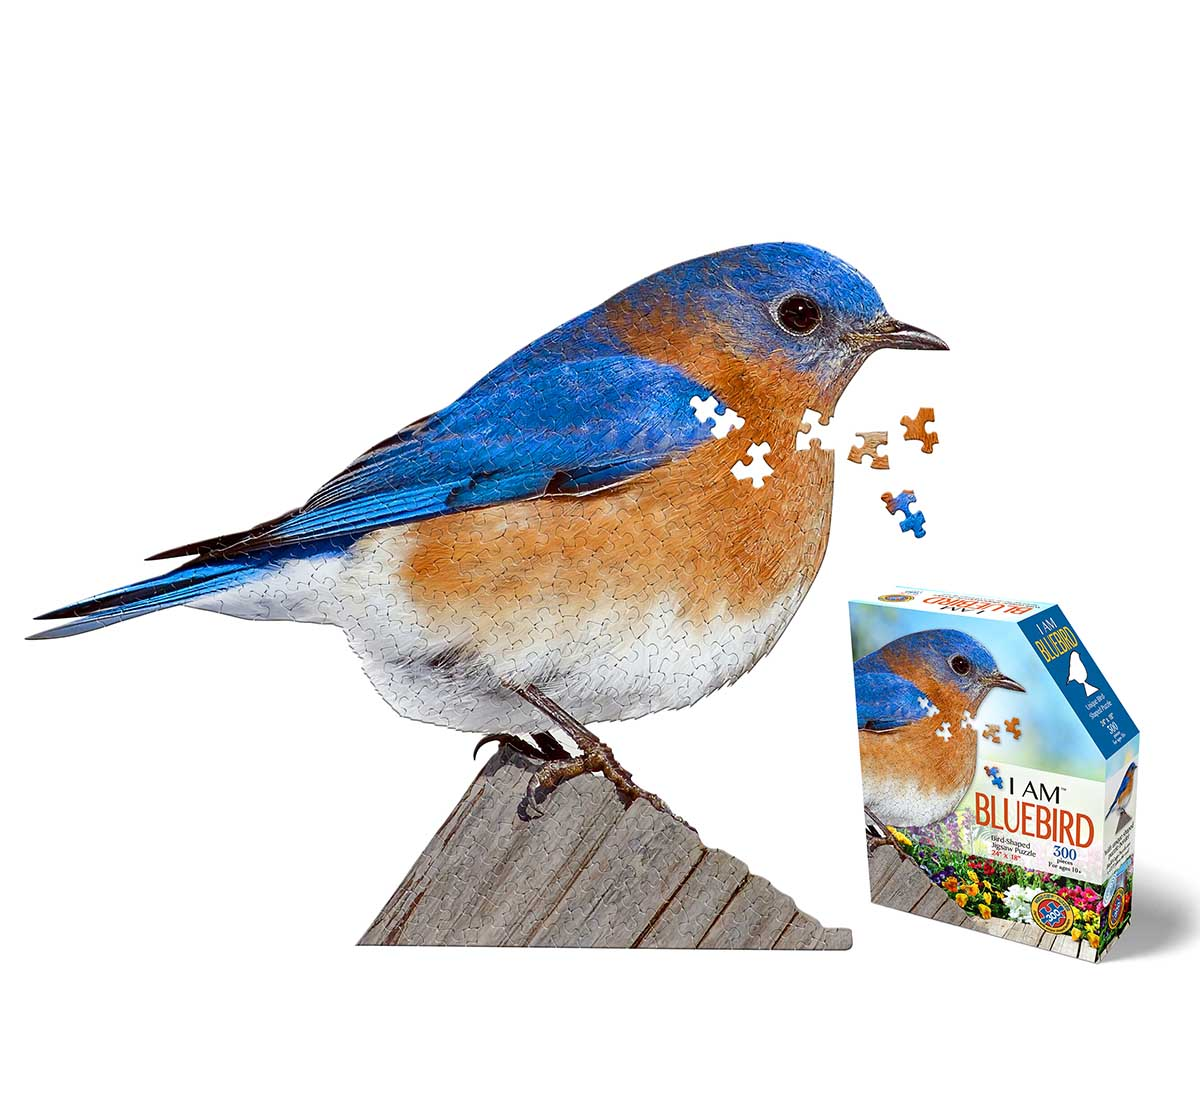 I AM Bluebird Birds Shaped Puzzle